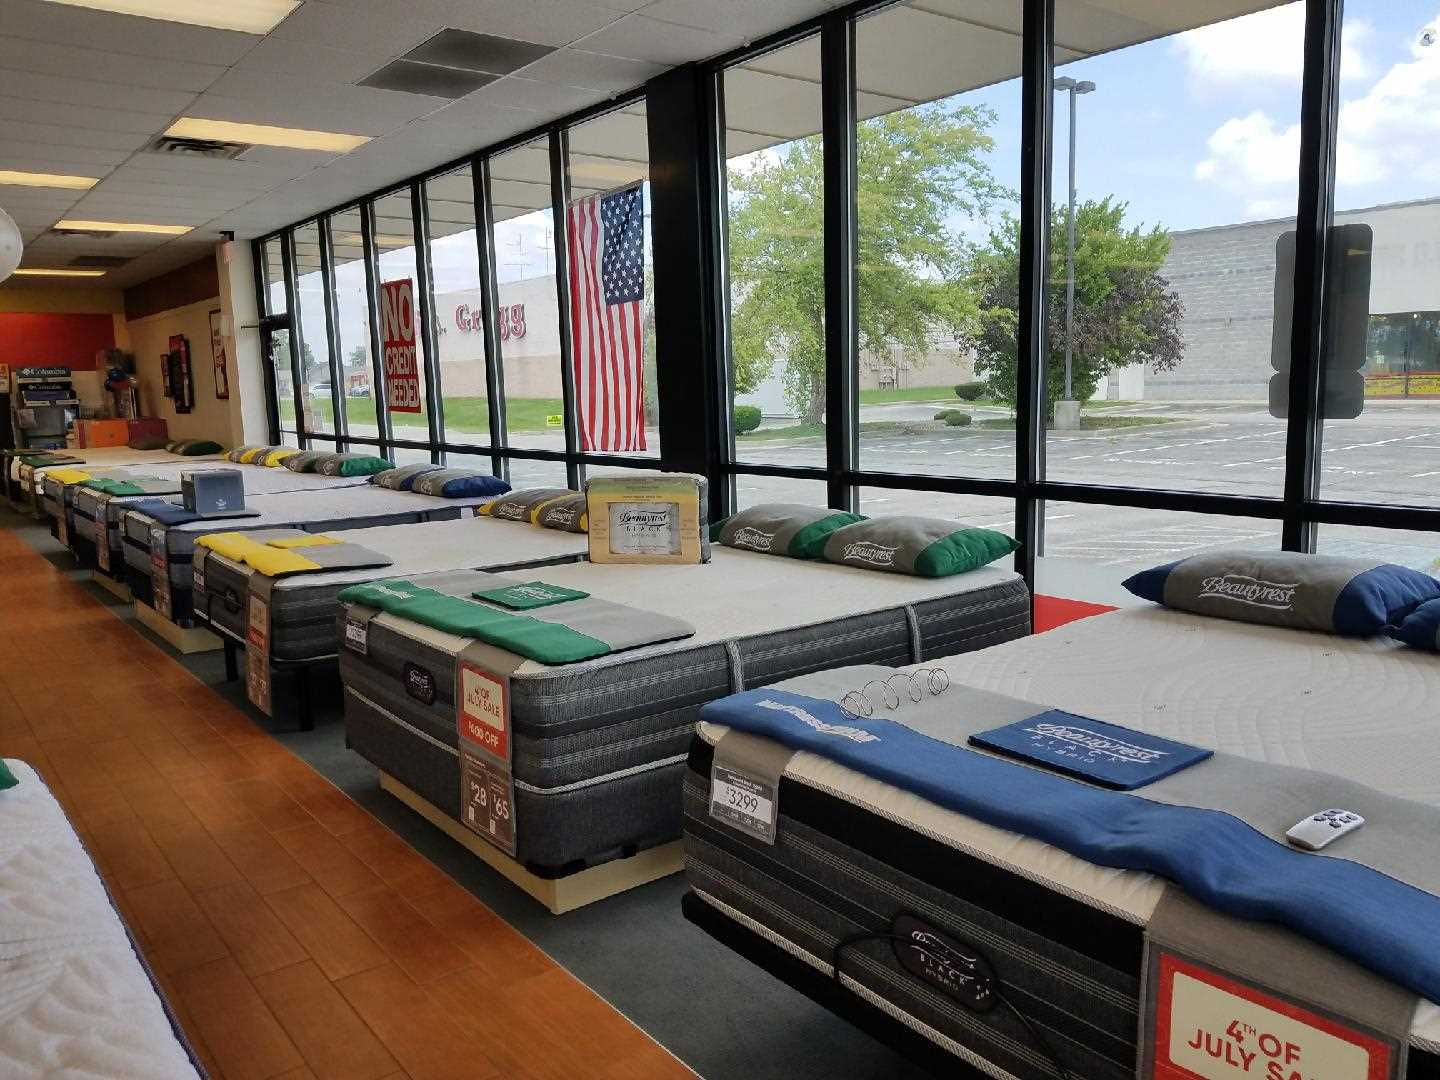 Mattress Firm Anderson image 8